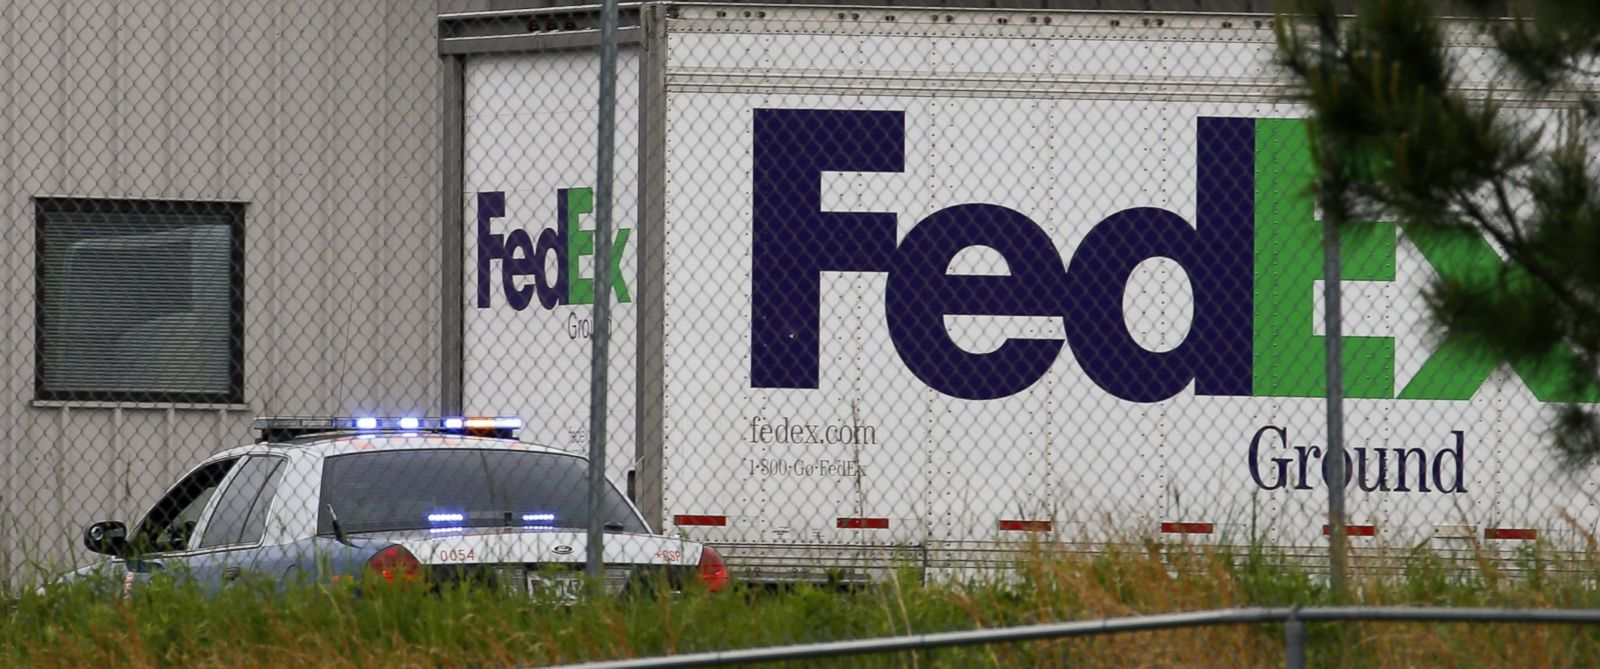 PHOTO: Law enforcement officers respond to a workplace shooting at a FedEx facility in Kennesaw, Ga. on April 29, 2014.